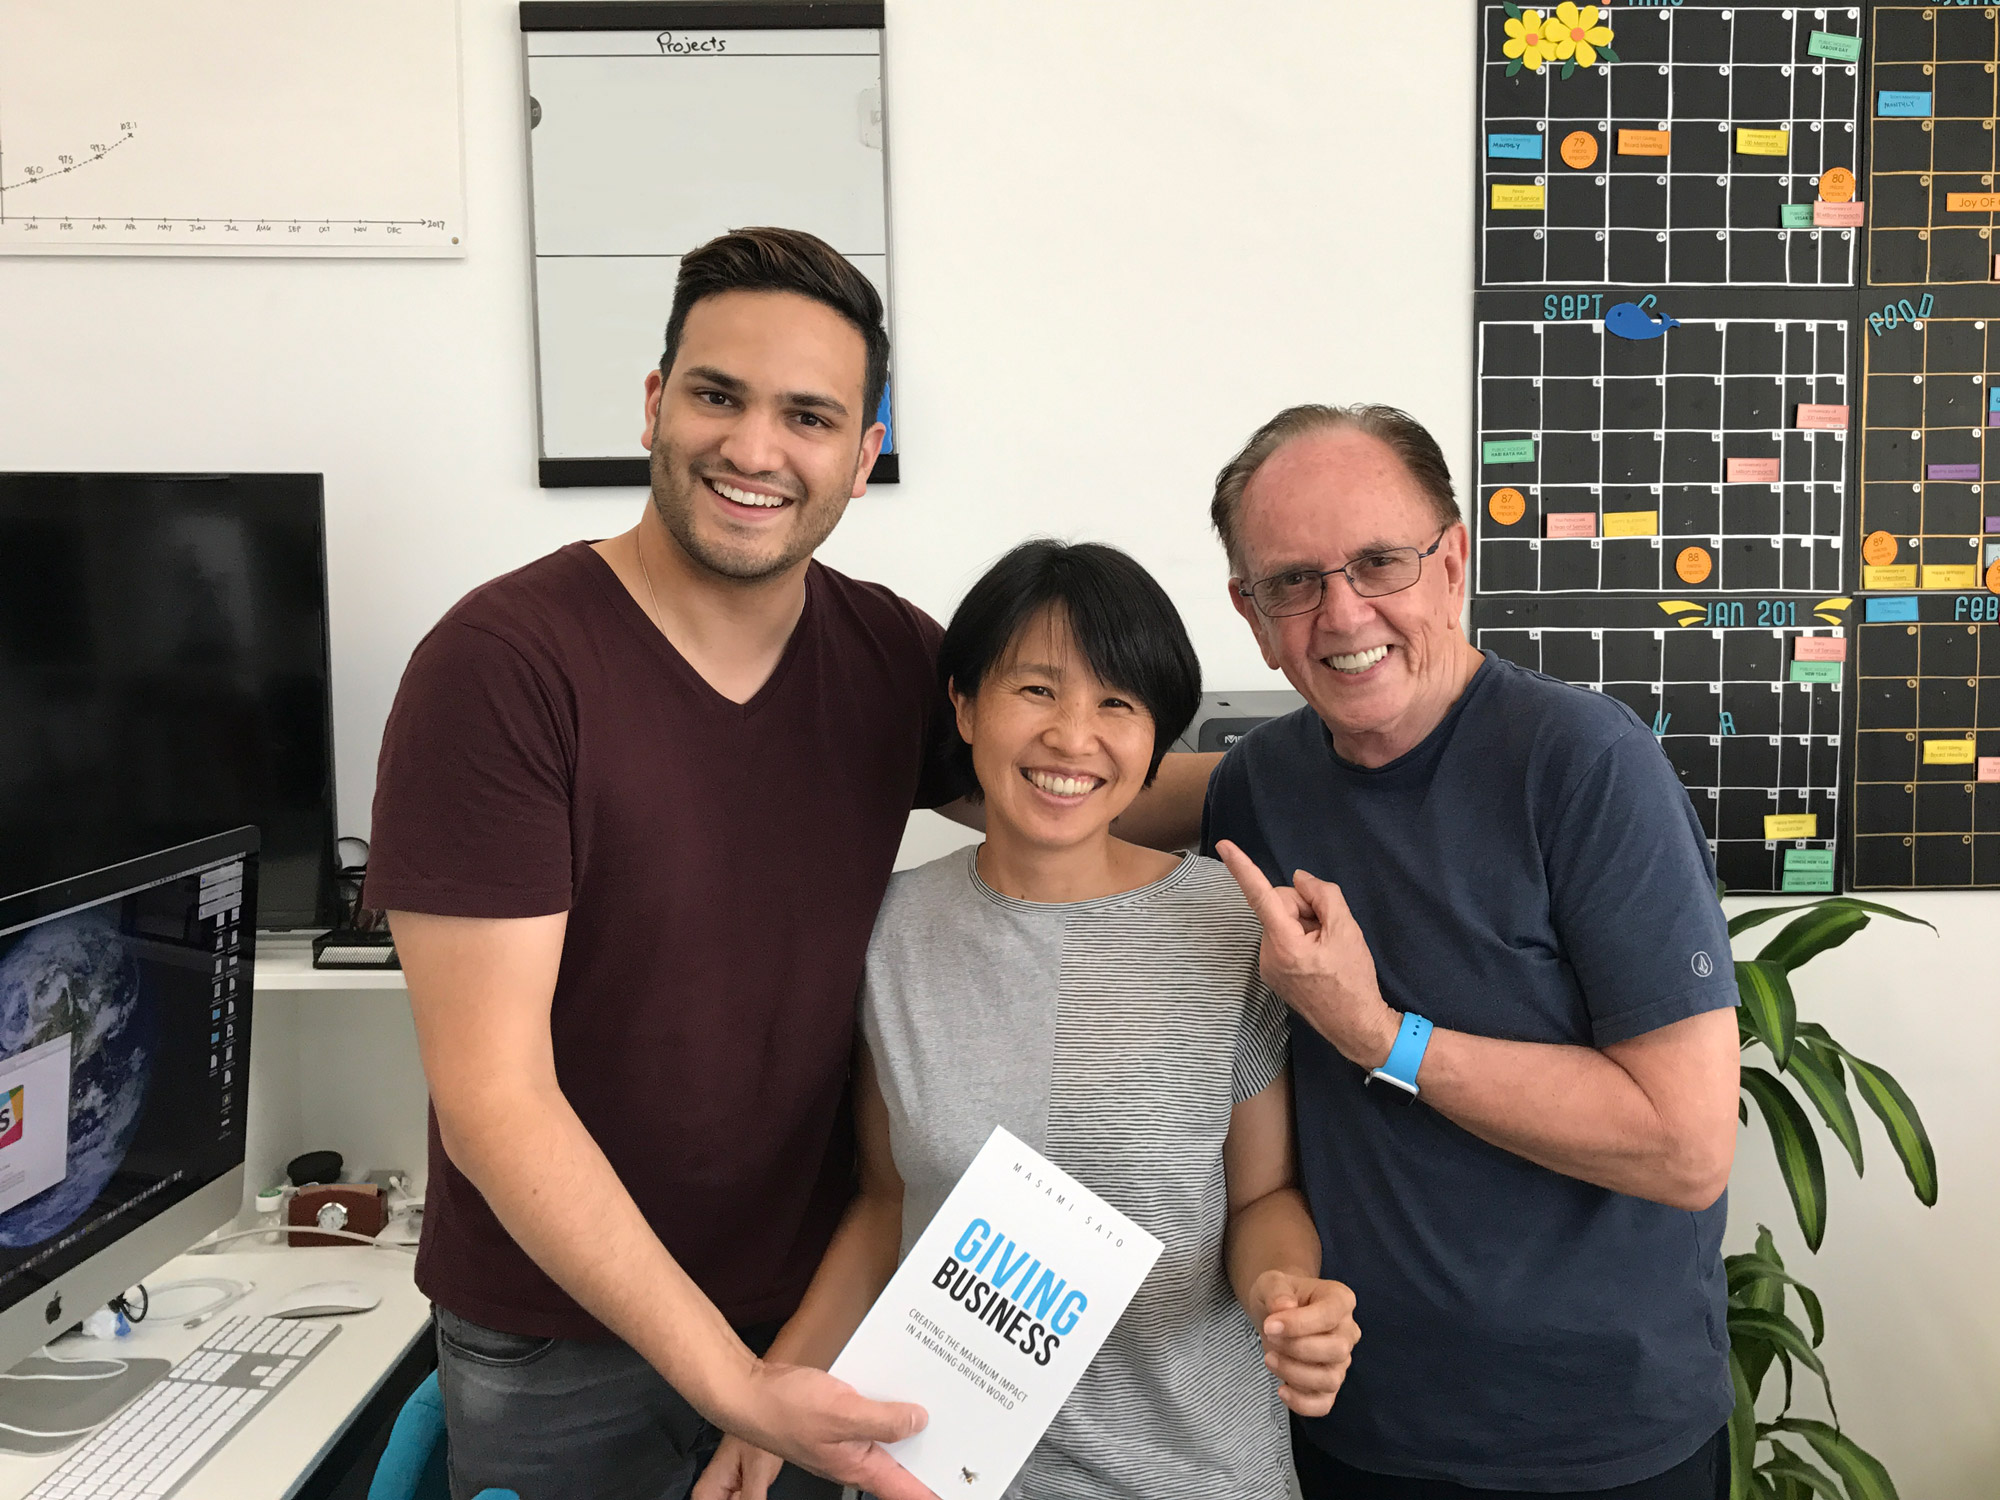 Nathan Shooter with Masami Sato and Paul Dunn at the B1G1 HQ in Singapore.